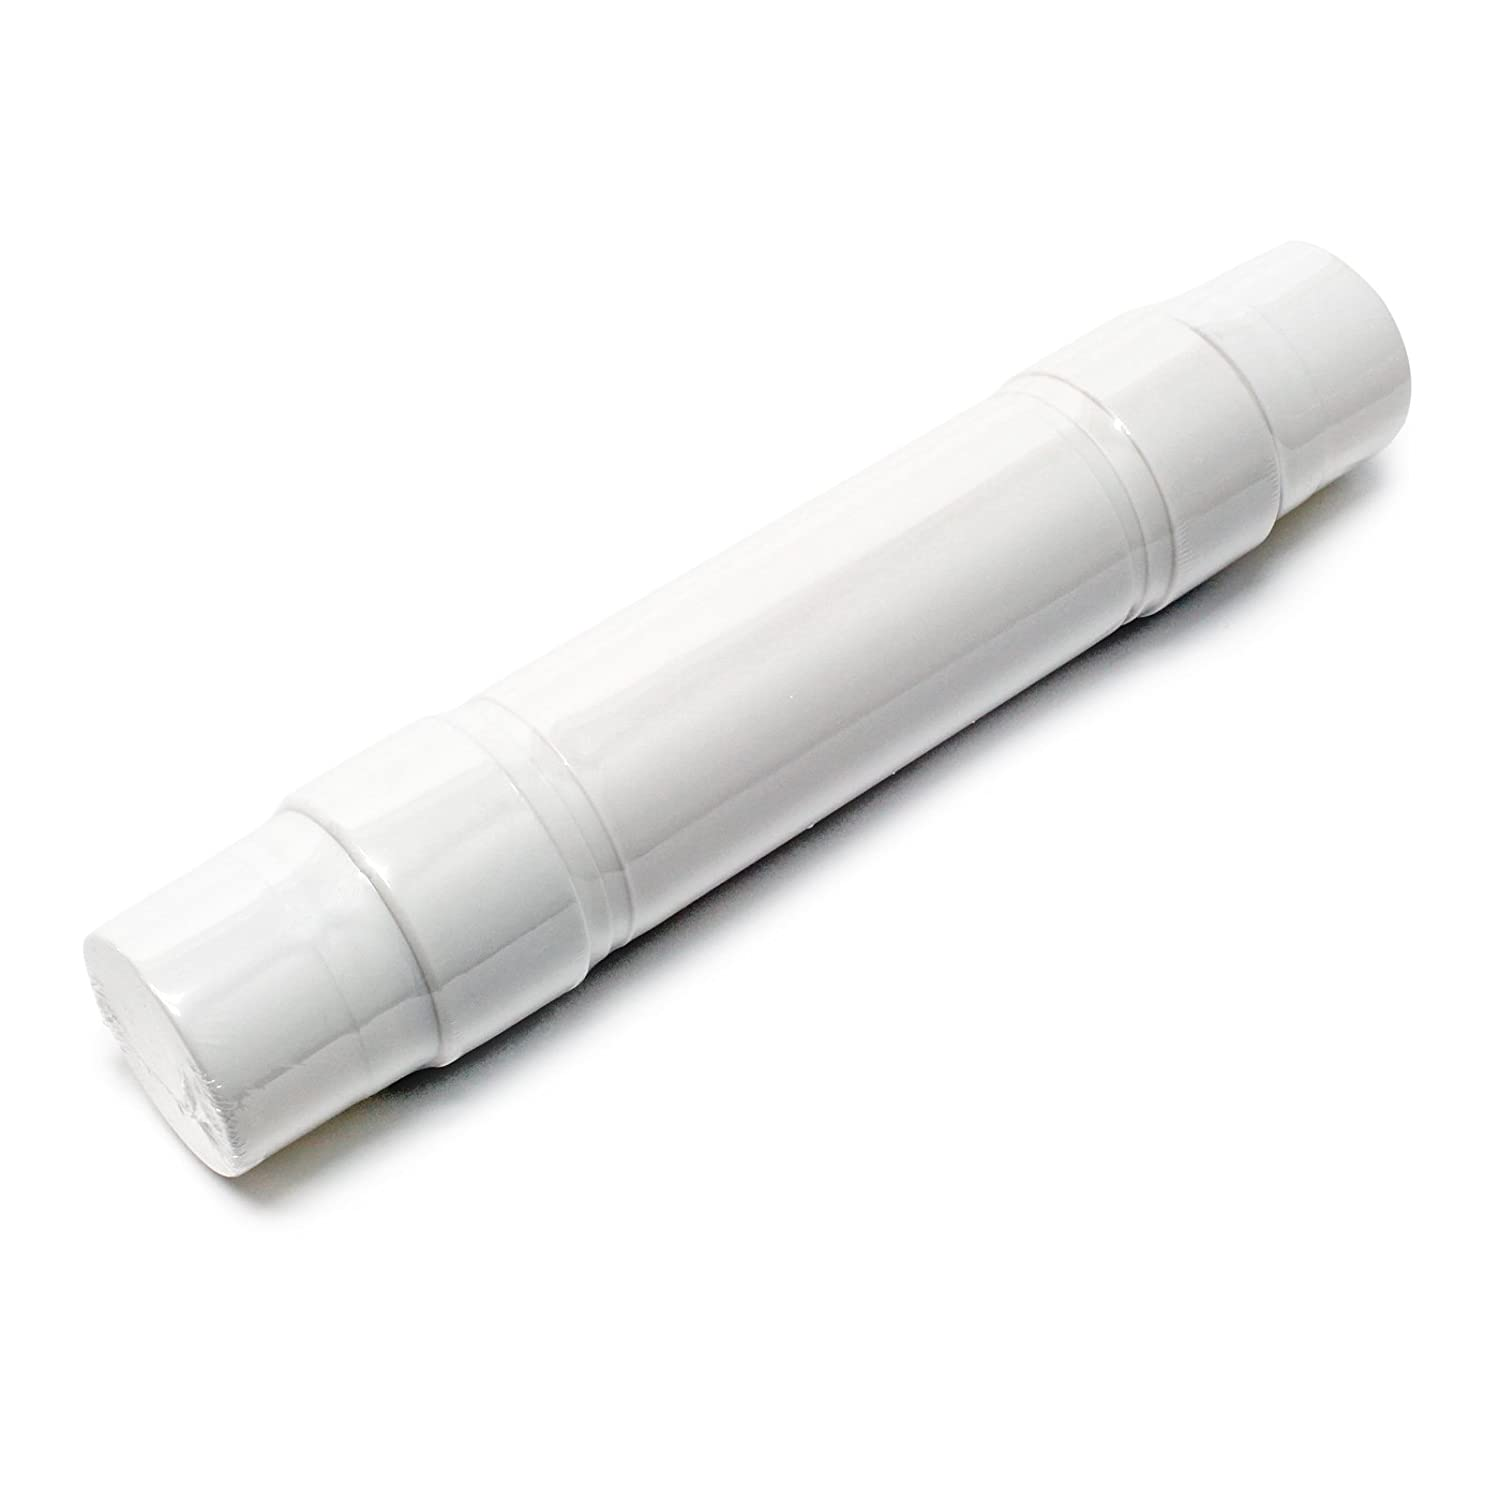 Naturewater QF-T33 10' quick fitting post inline carbon filter water filter replacement WilTec